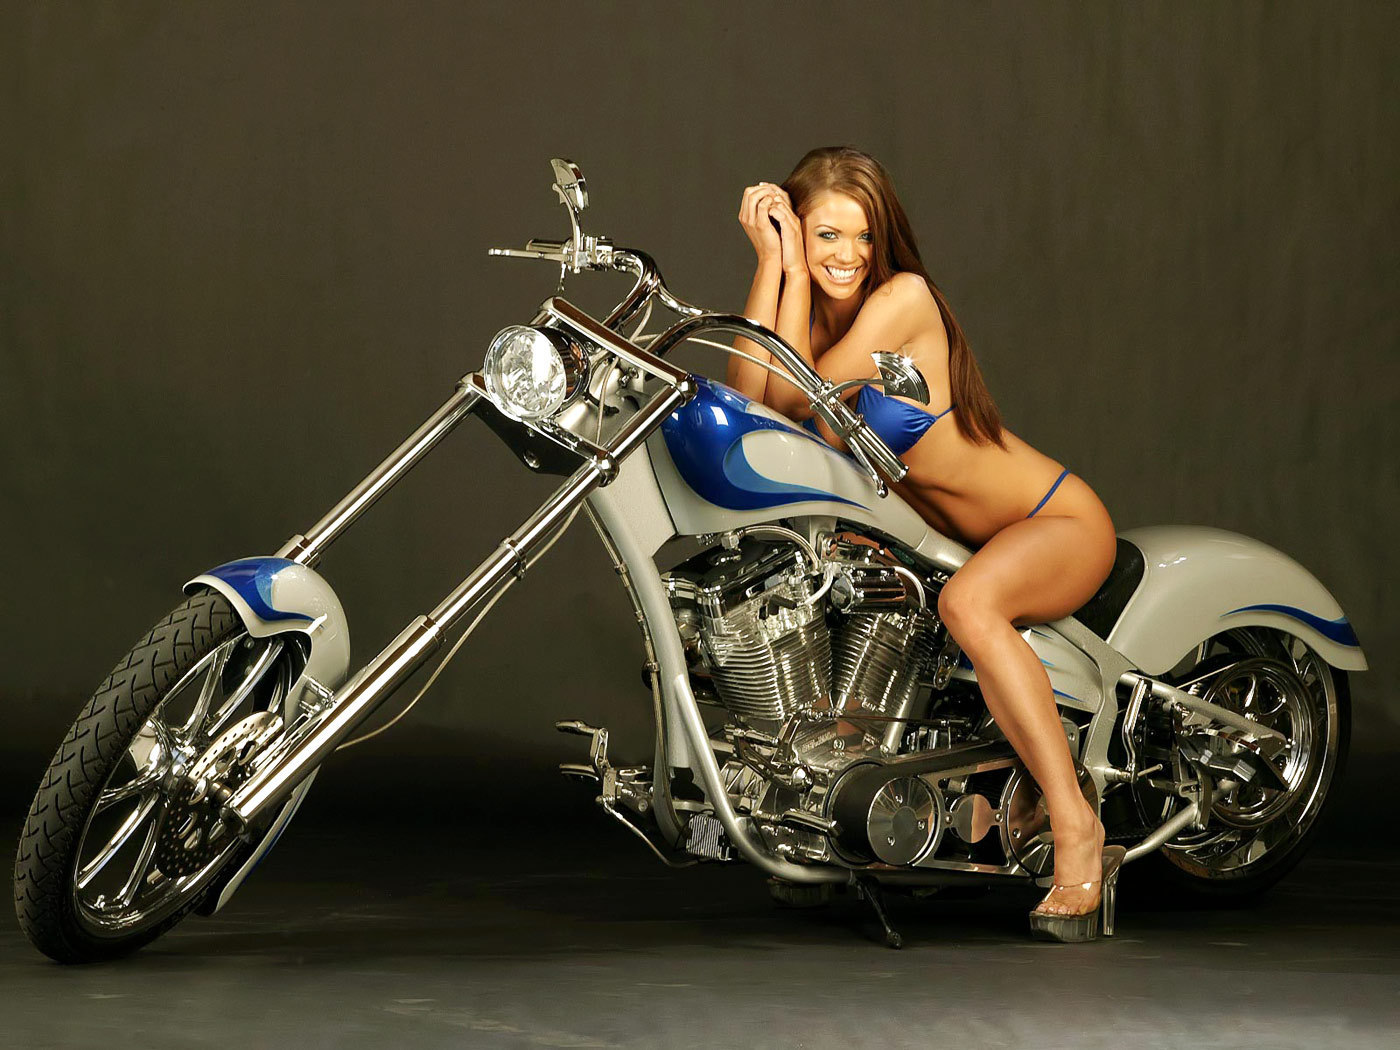 Girls On Harley-Davidson Motorcycles 1400 x 1050 · 276 kB · jpeg